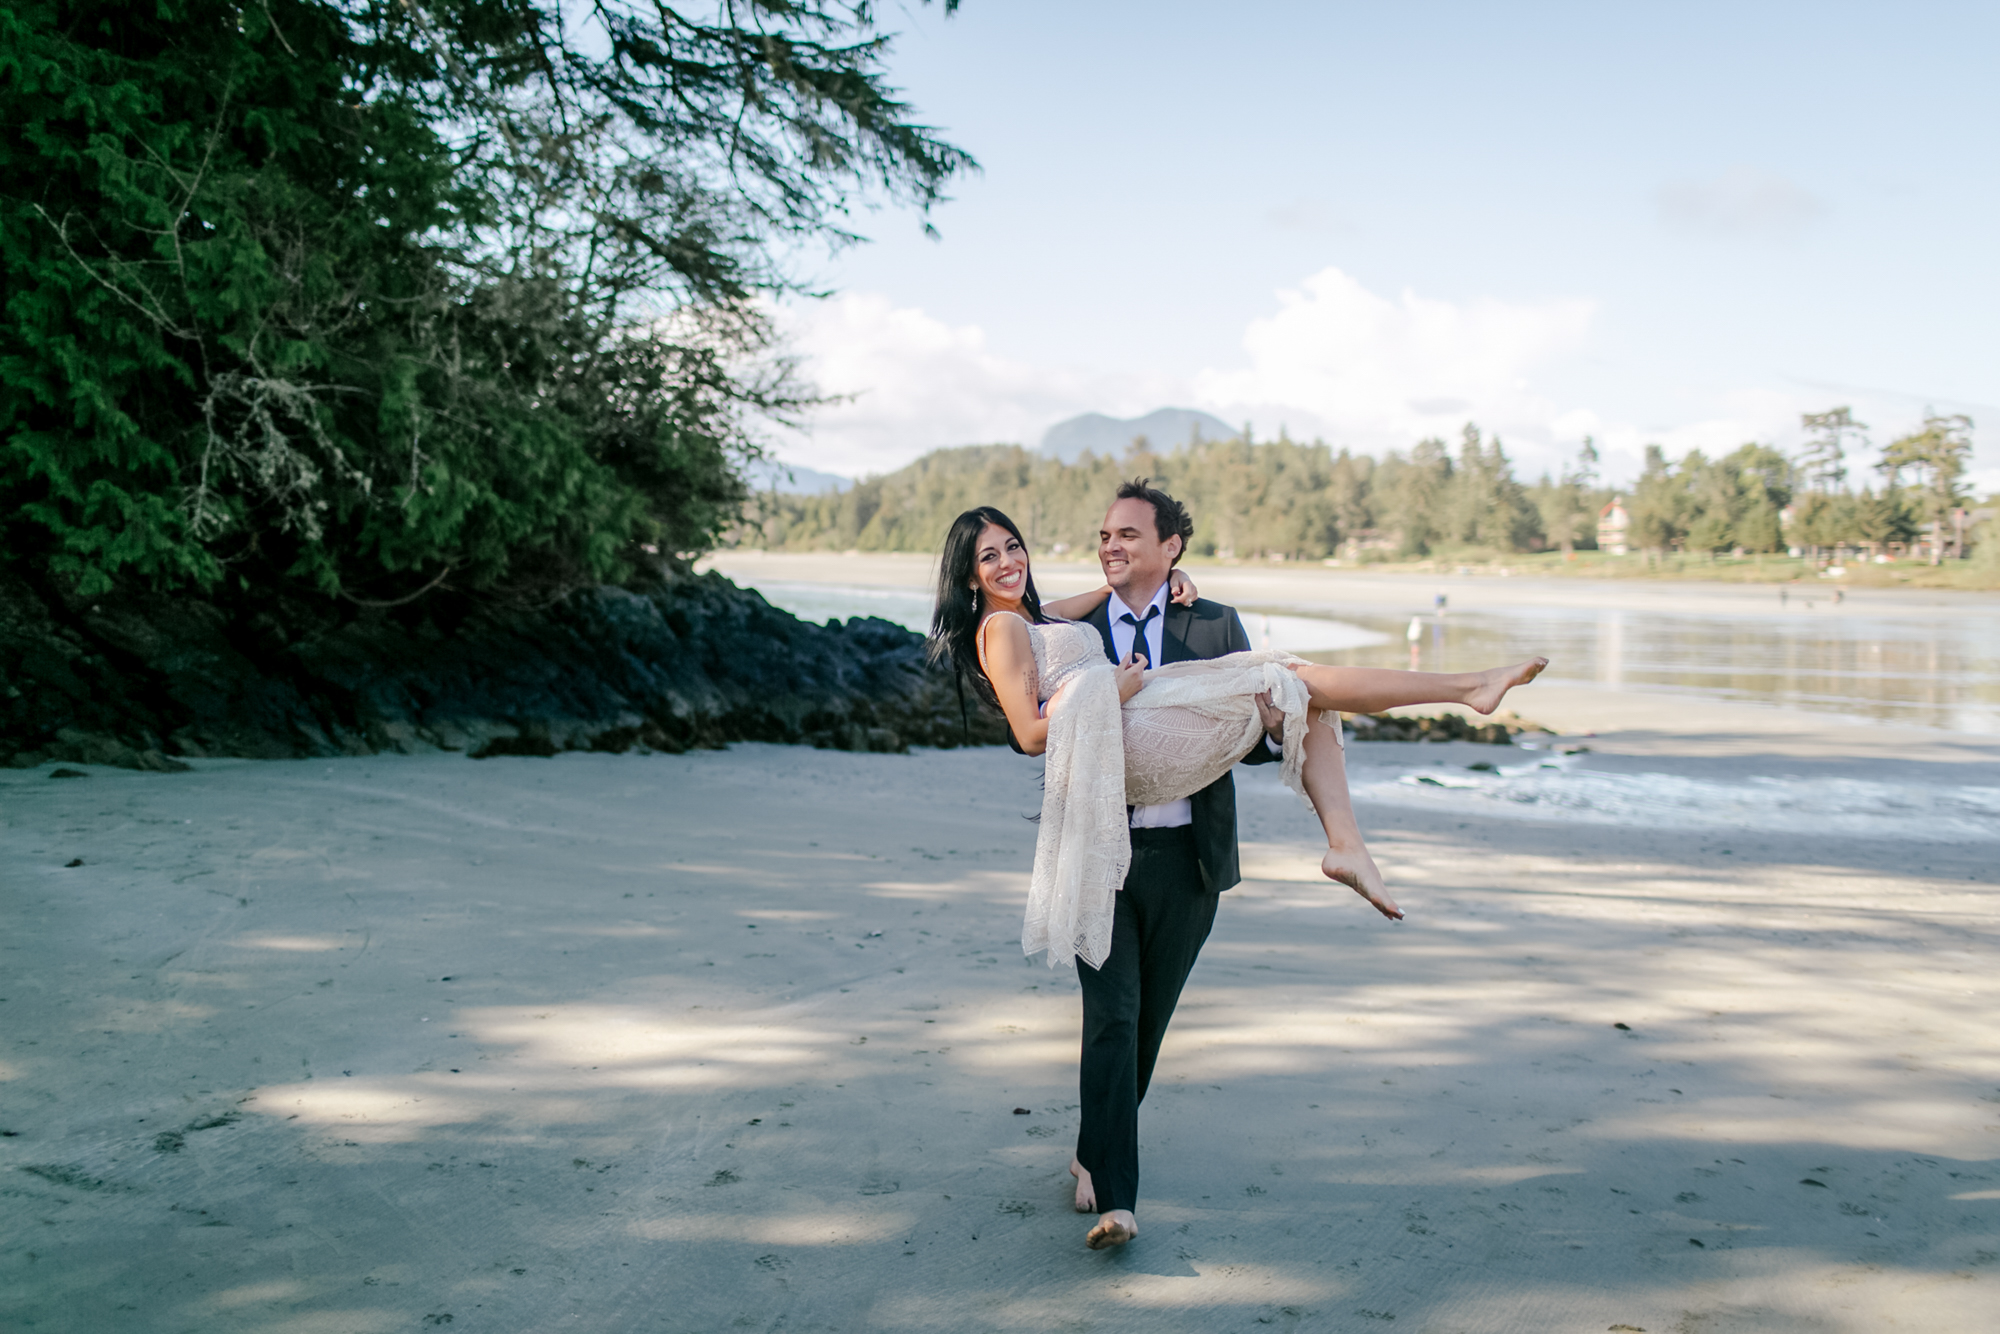 vancouver-luxury-engagement-photographer-lori-miles-150.jpg